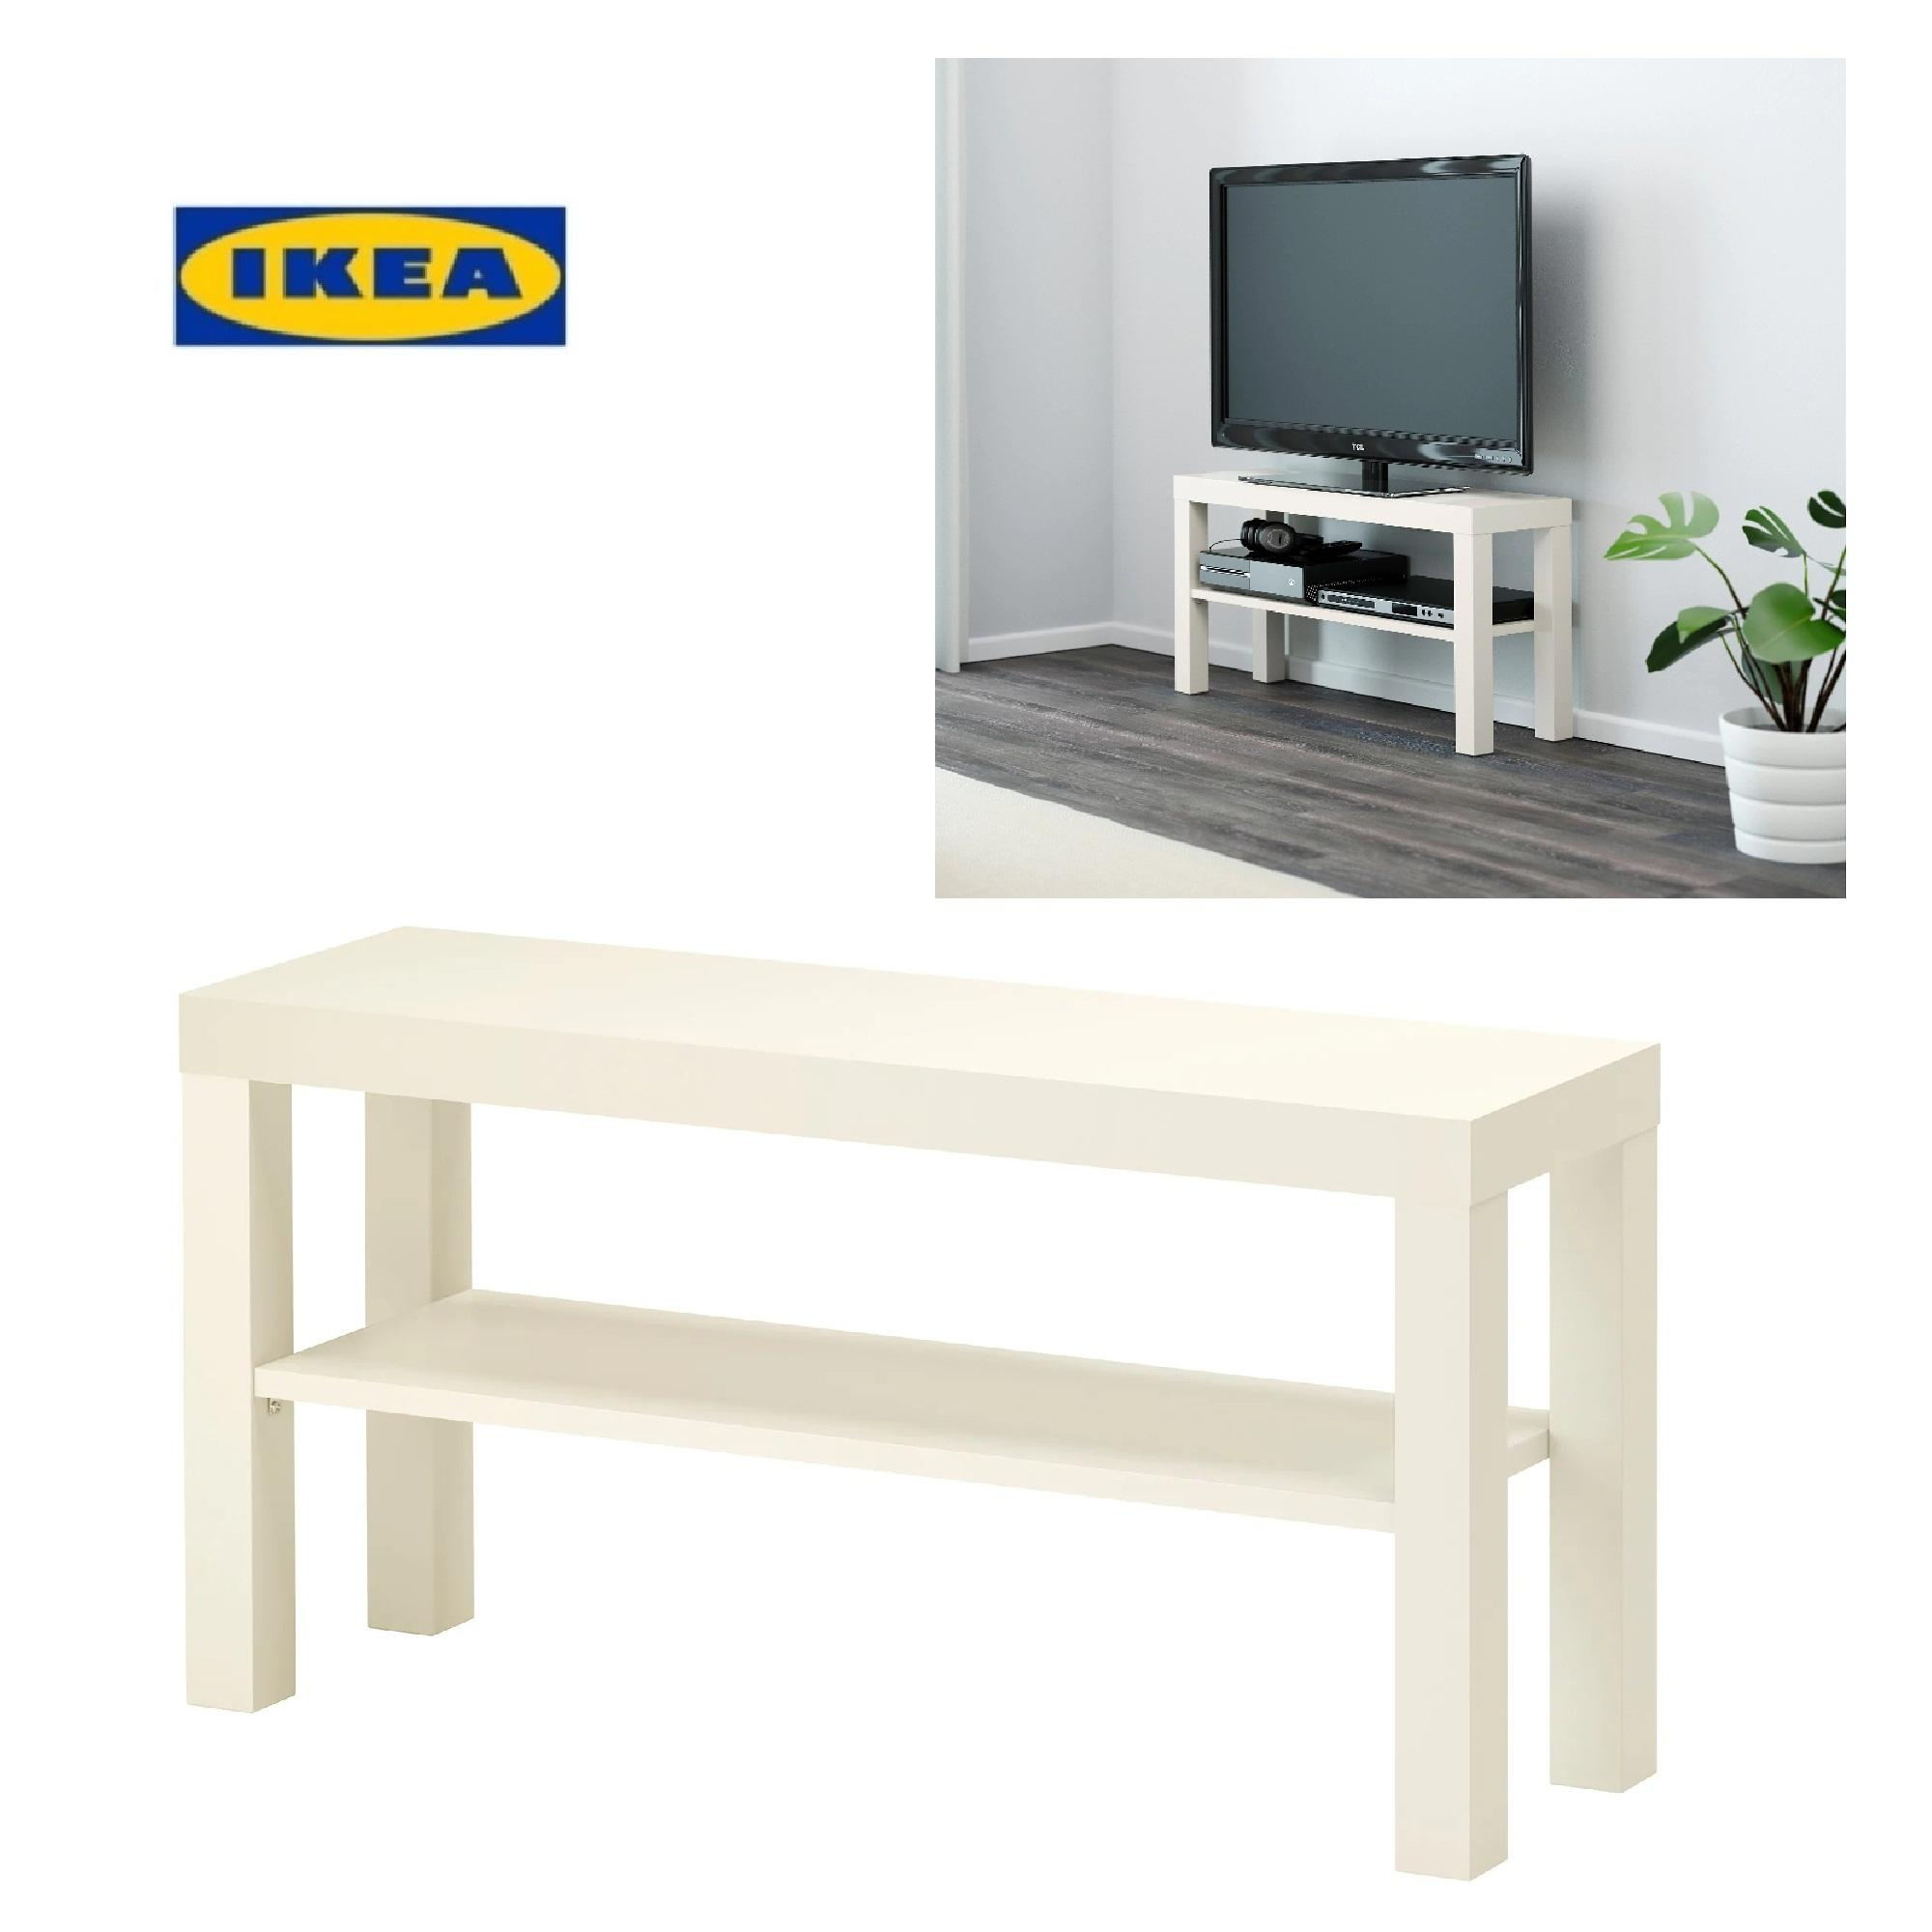 Home Media & Tv Storage – Buy Home Media & Tv Storage At Best Price Throughout Bale 82 Inch Tv Stands (View 14 of 30)